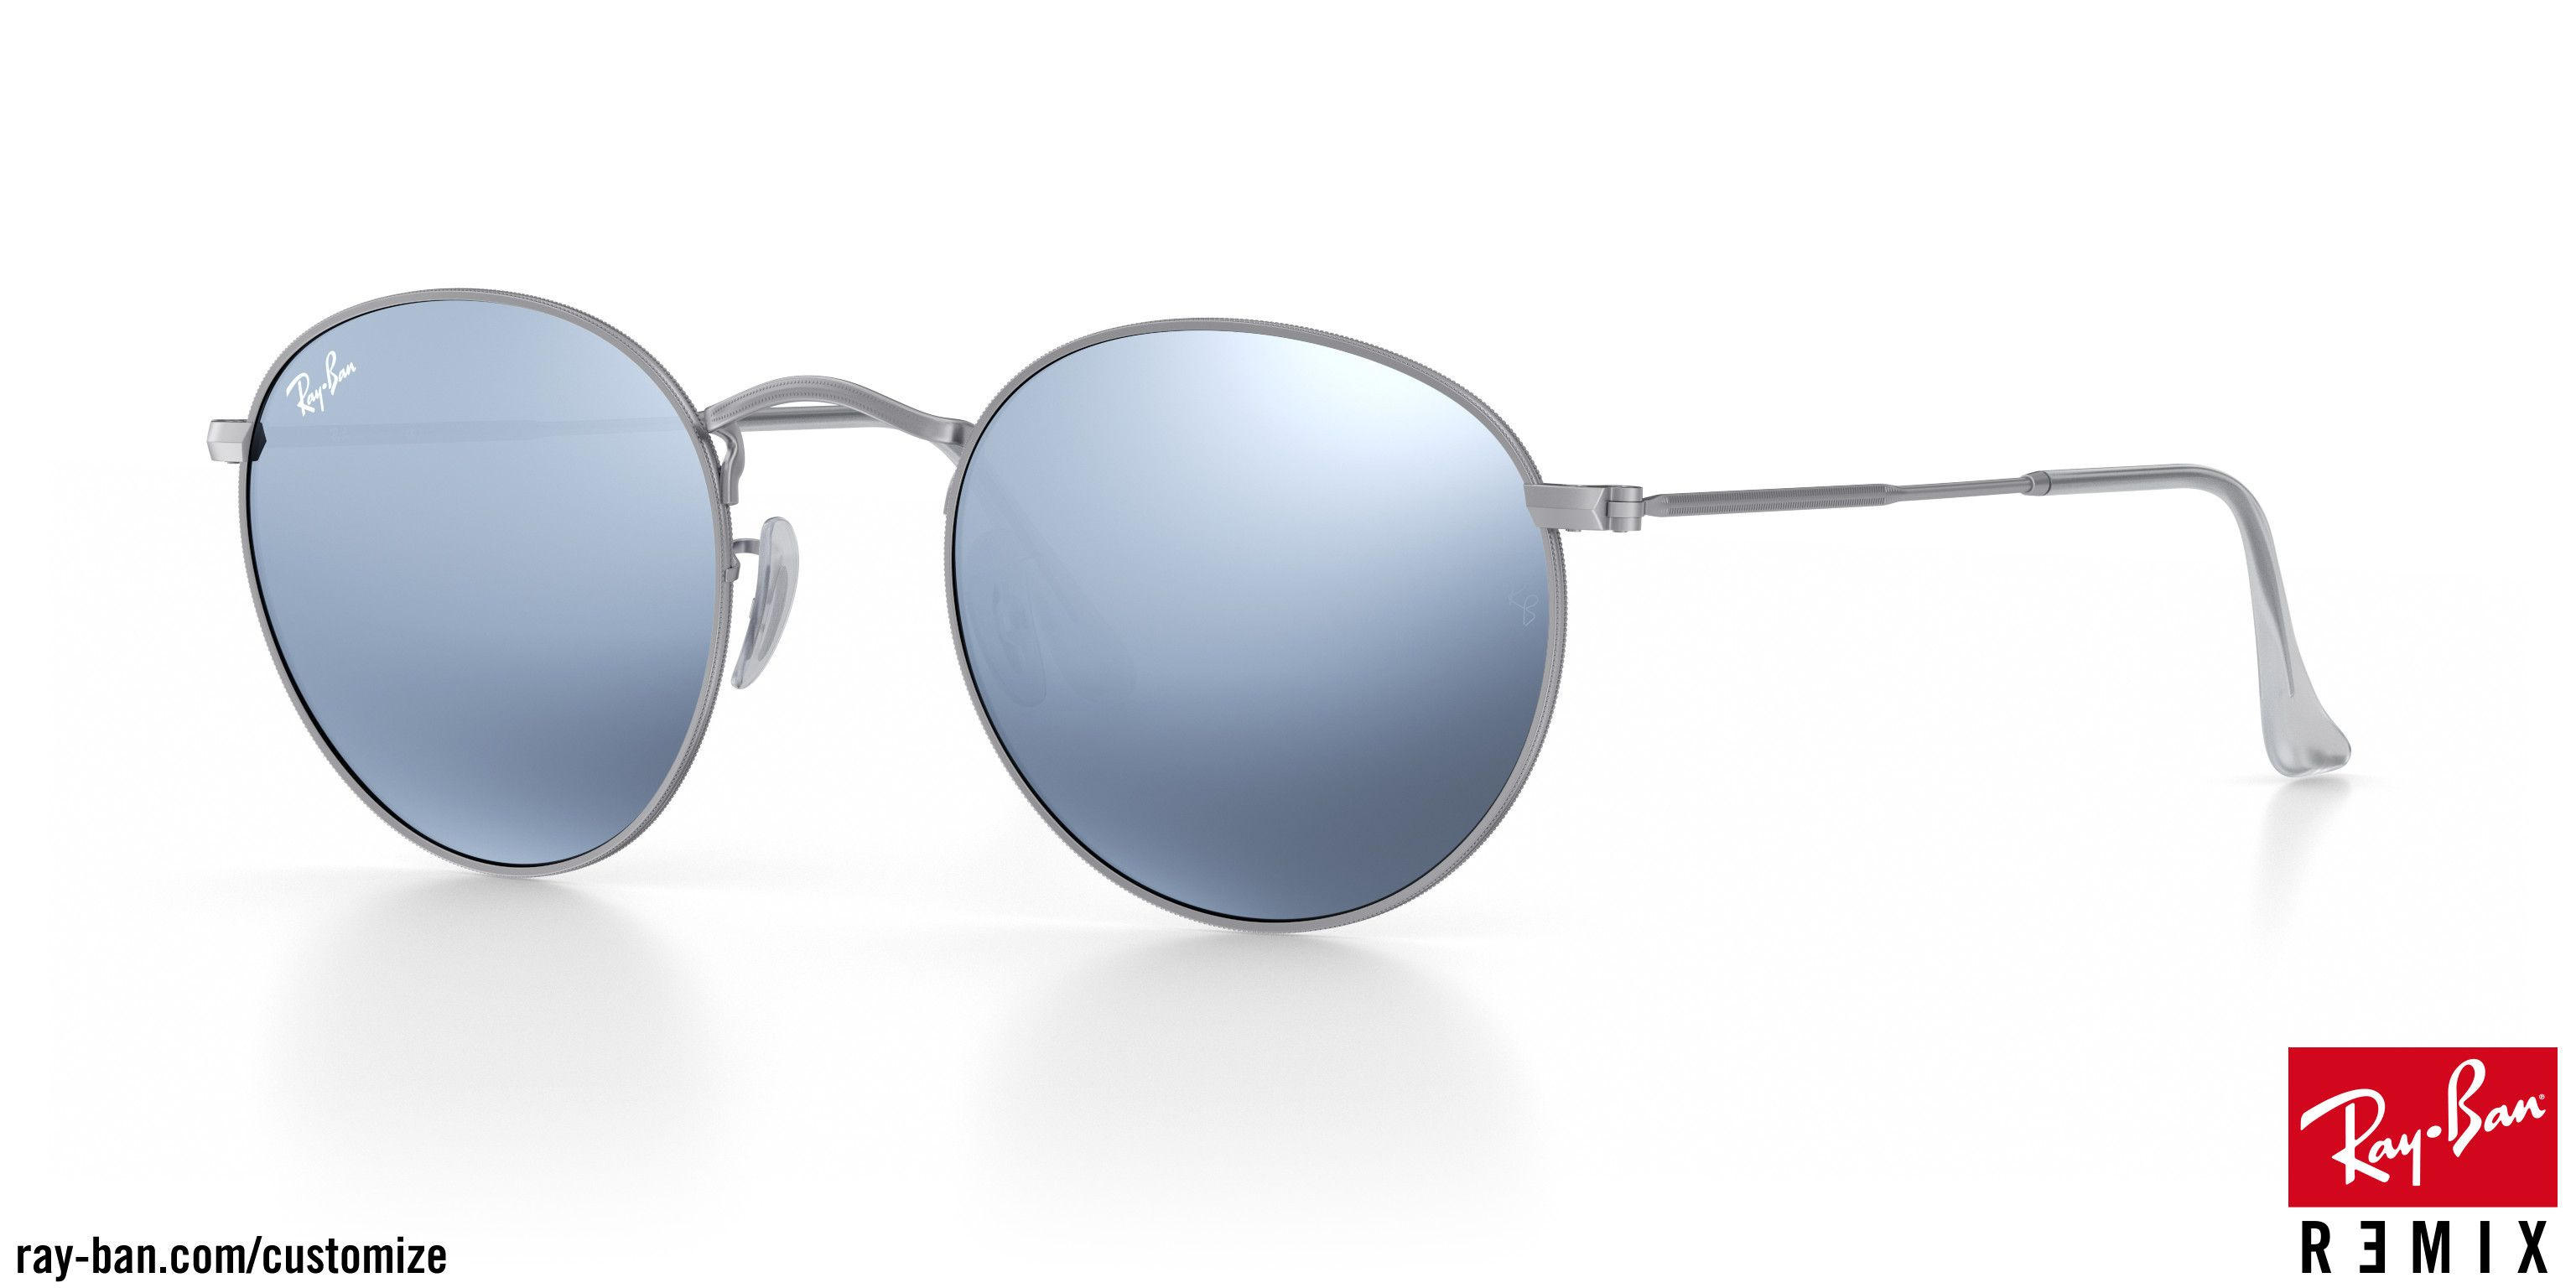 fa15fa0c1259e3 Look who s looking at this new Ray-Ban round metal sunglasses ...